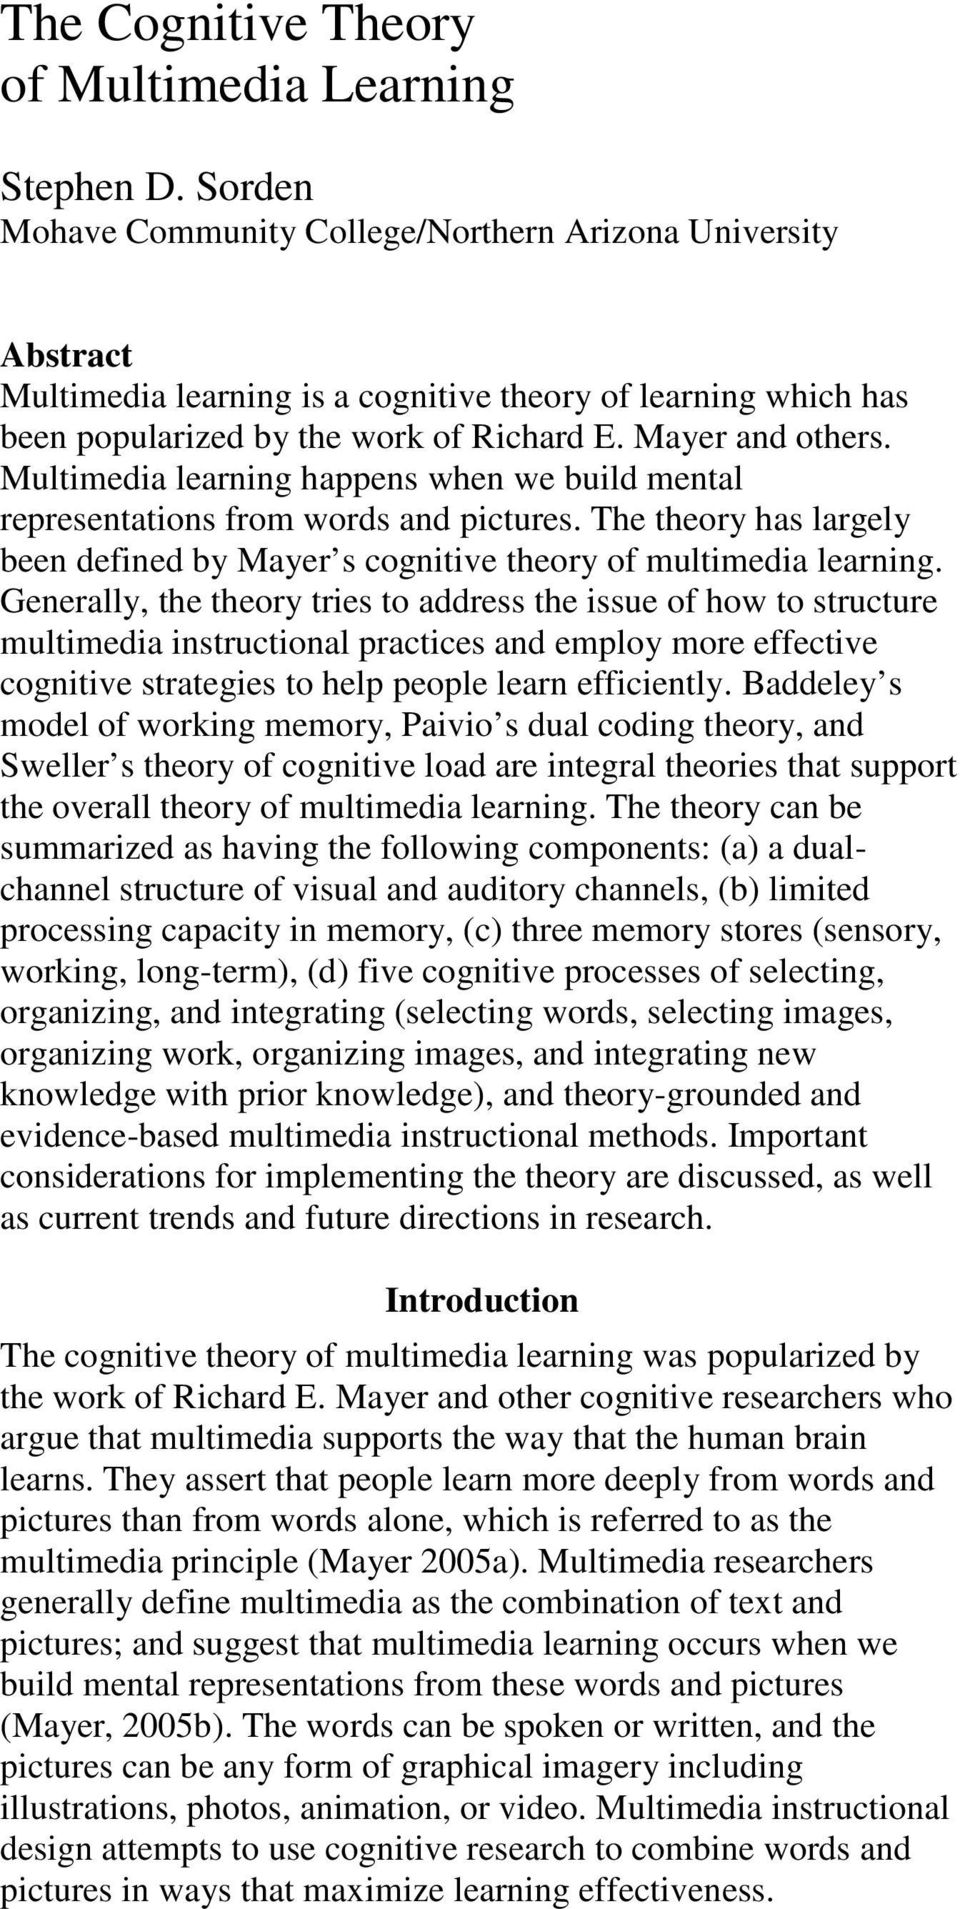 the cognitive theory of multimedia learning - pdf